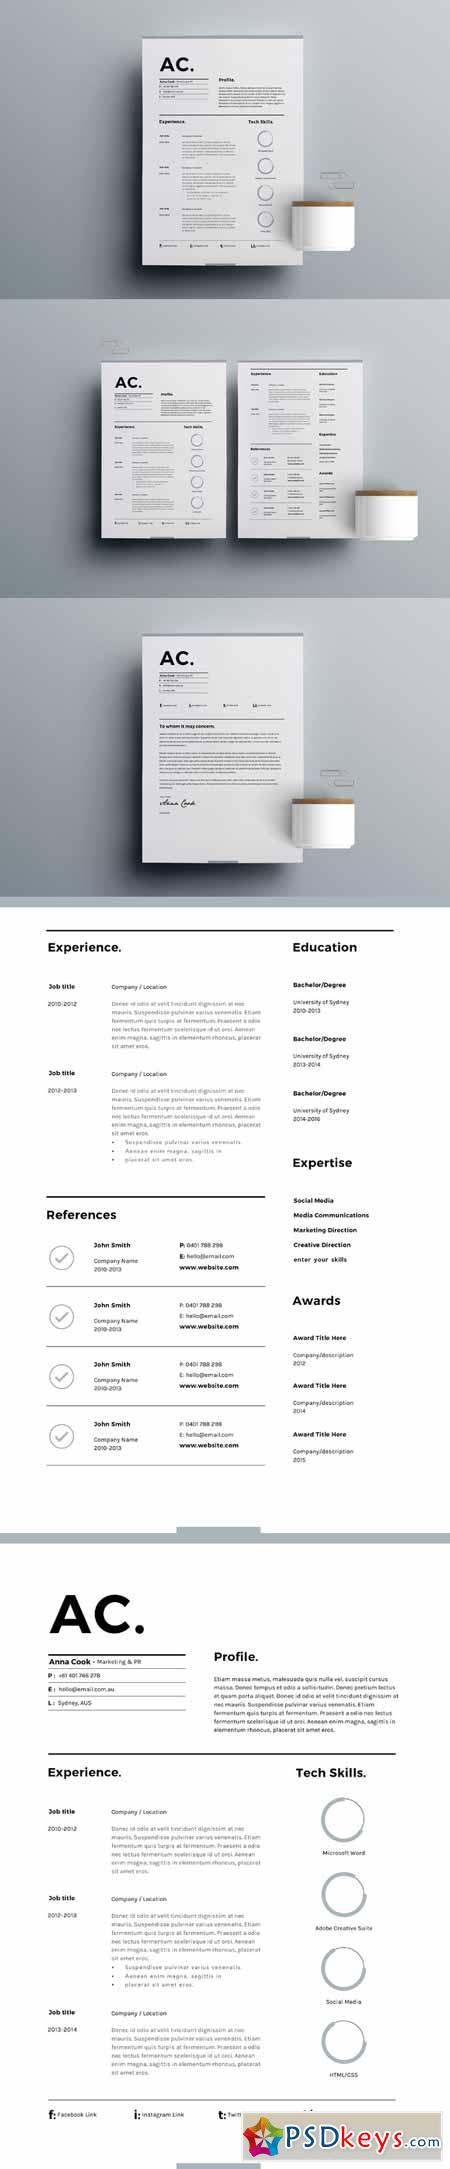 resume template 3 page cv template 636078  u00bb free download photoshop vector stock image via